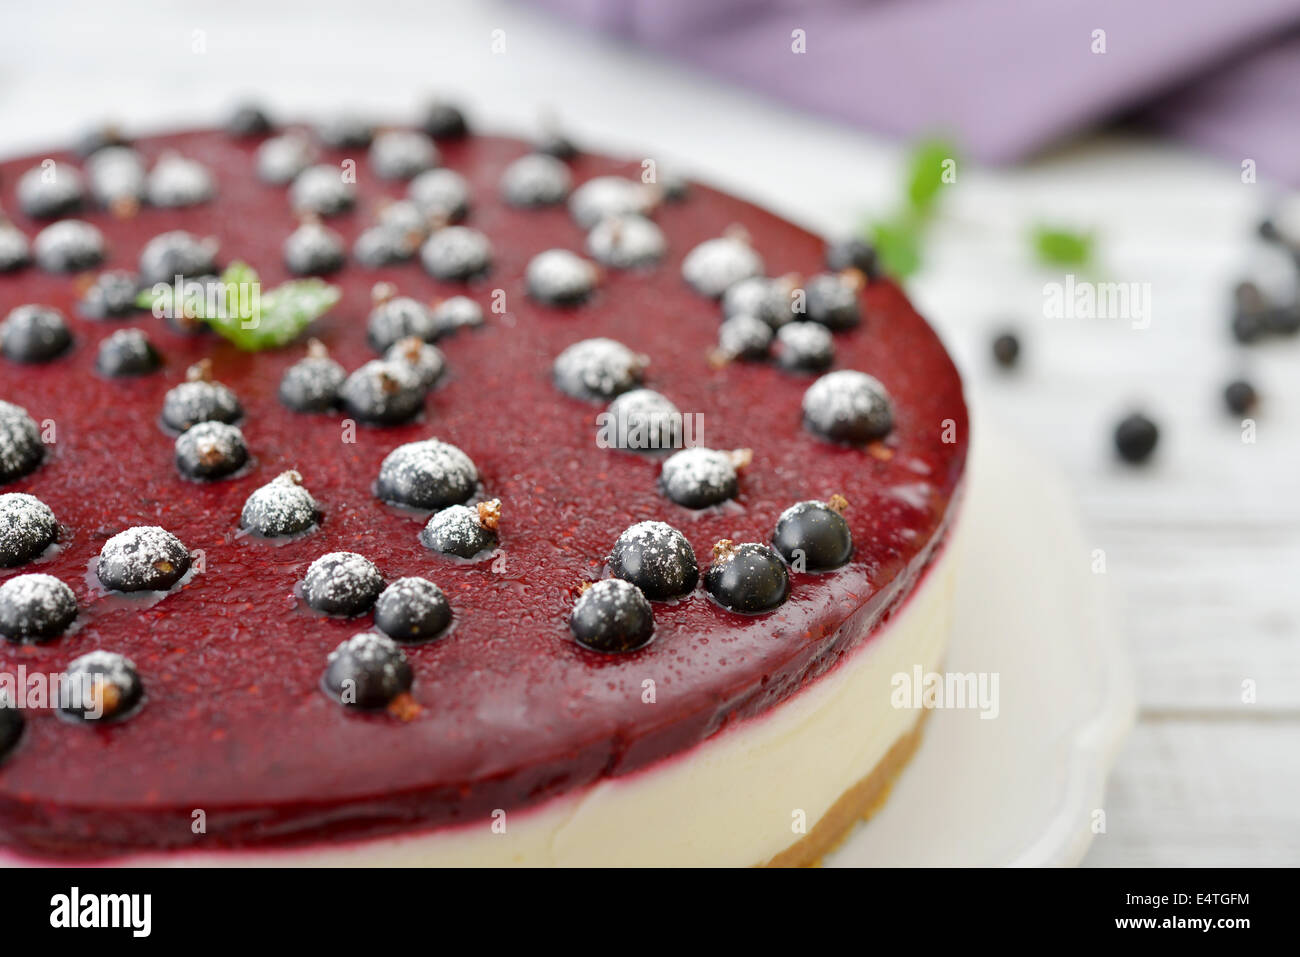 Black currant cheesecake with fresh berries on plate closeup - Stock Image